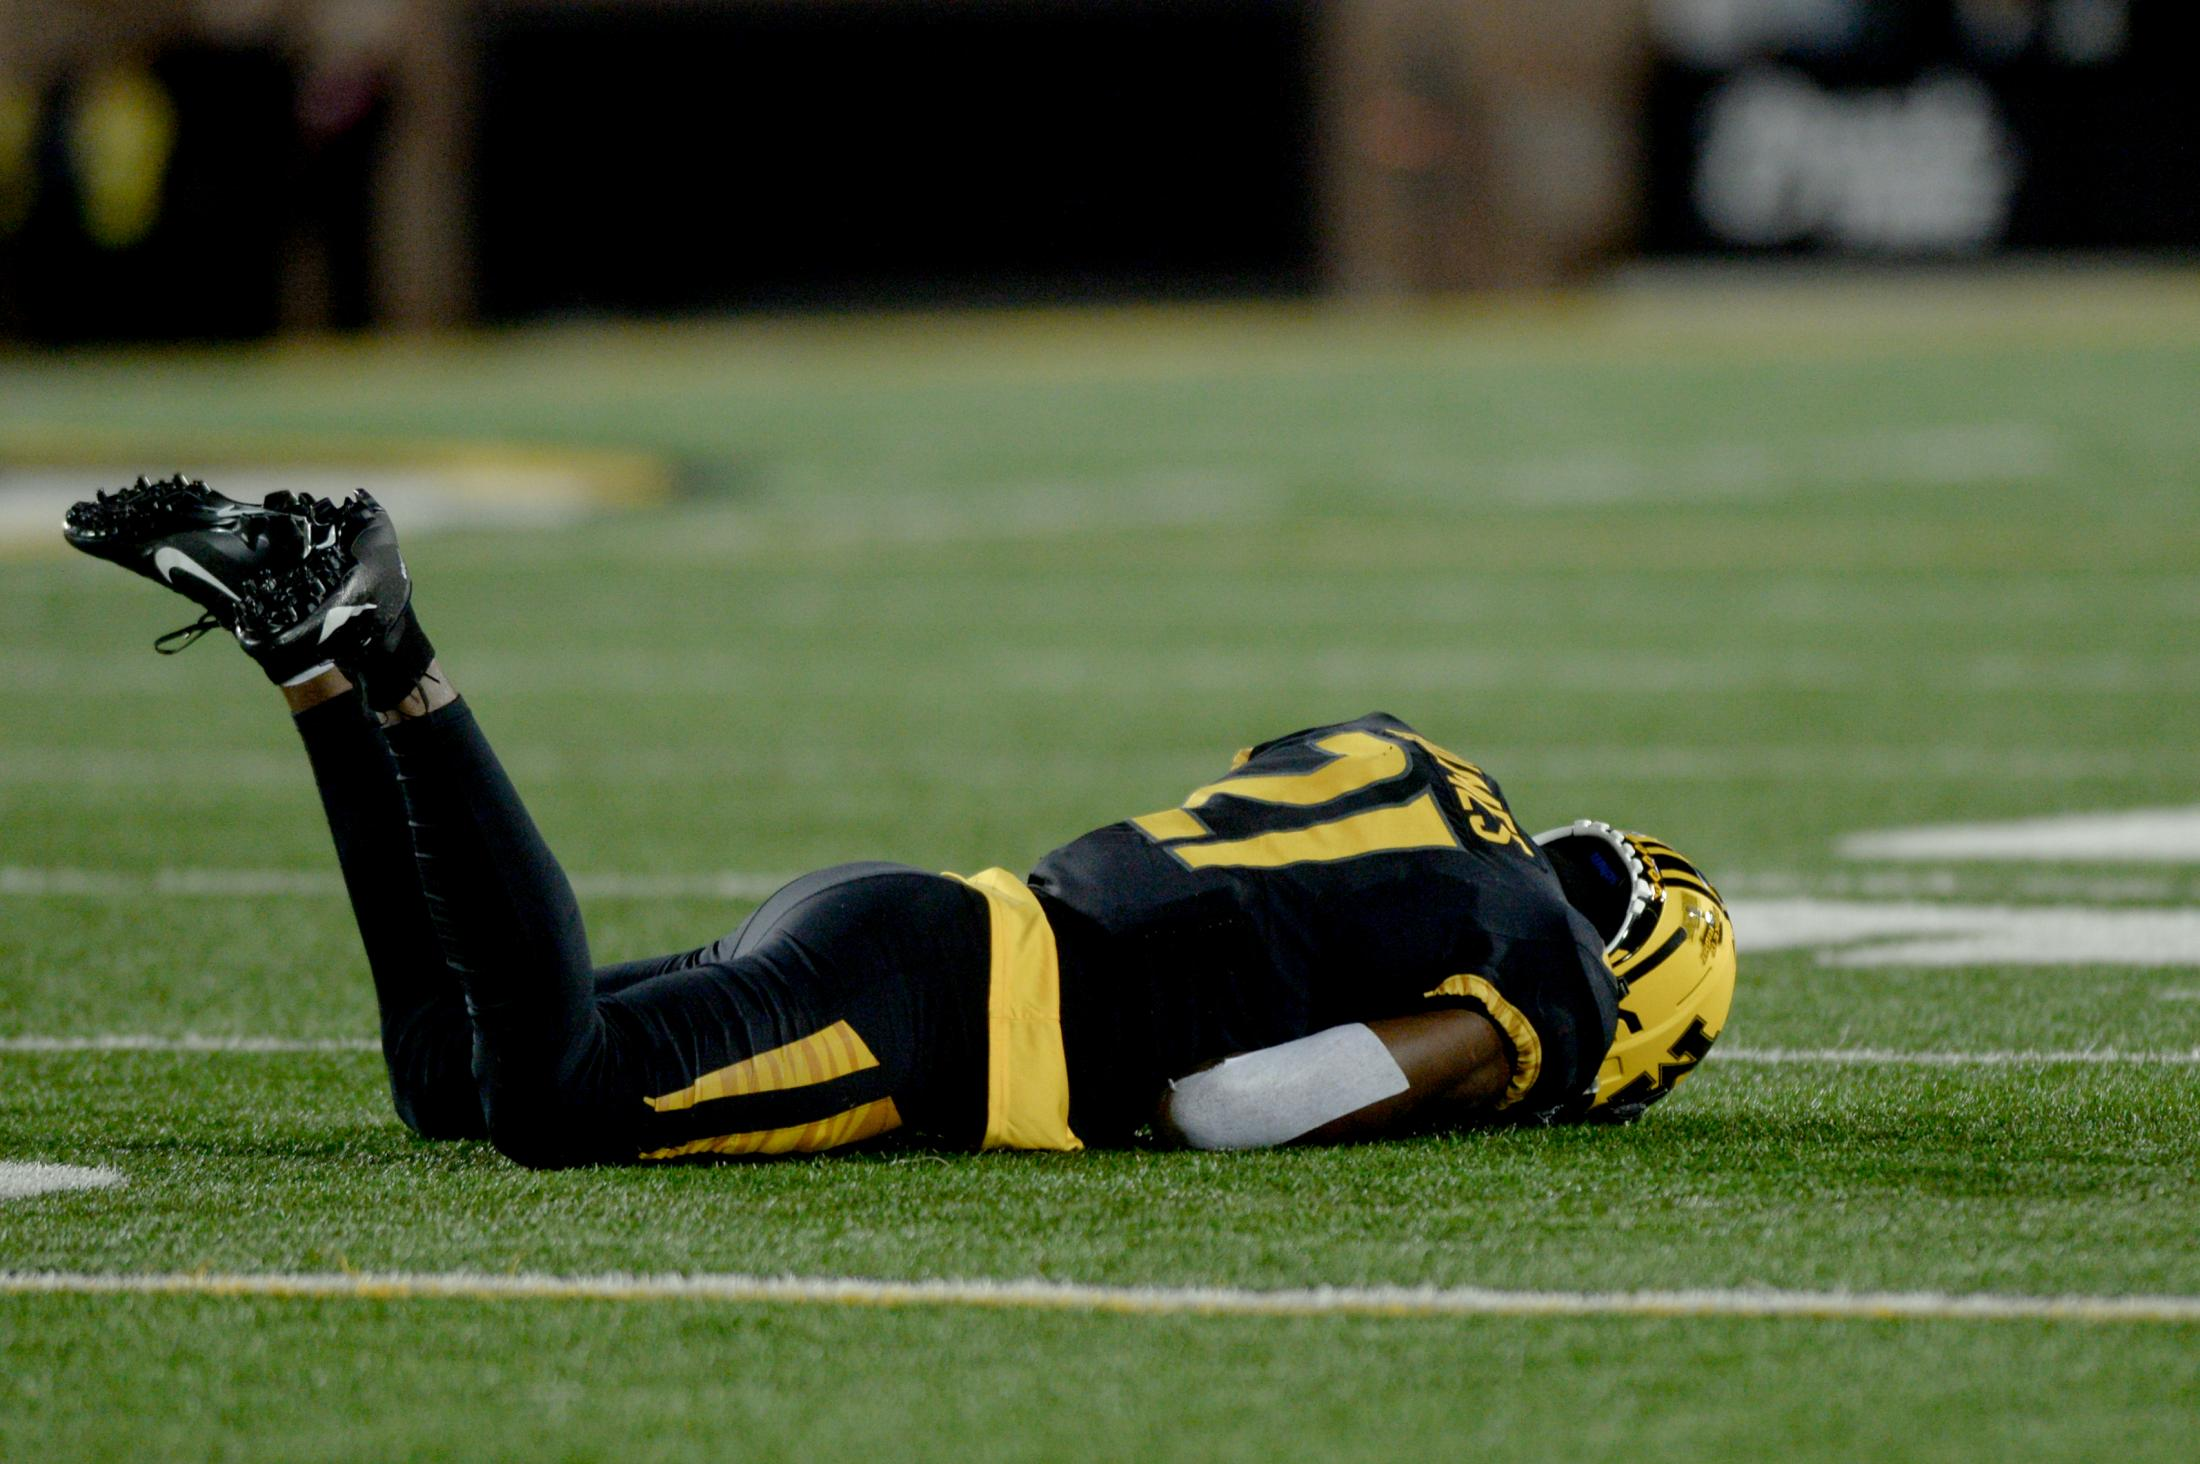 Missouri defensive back Christian Holmes lies on the field after a play during Missouri's matchup with Tennessee on Saturday, November 23, 2019, on Faurot Field at Memorial Stadium.